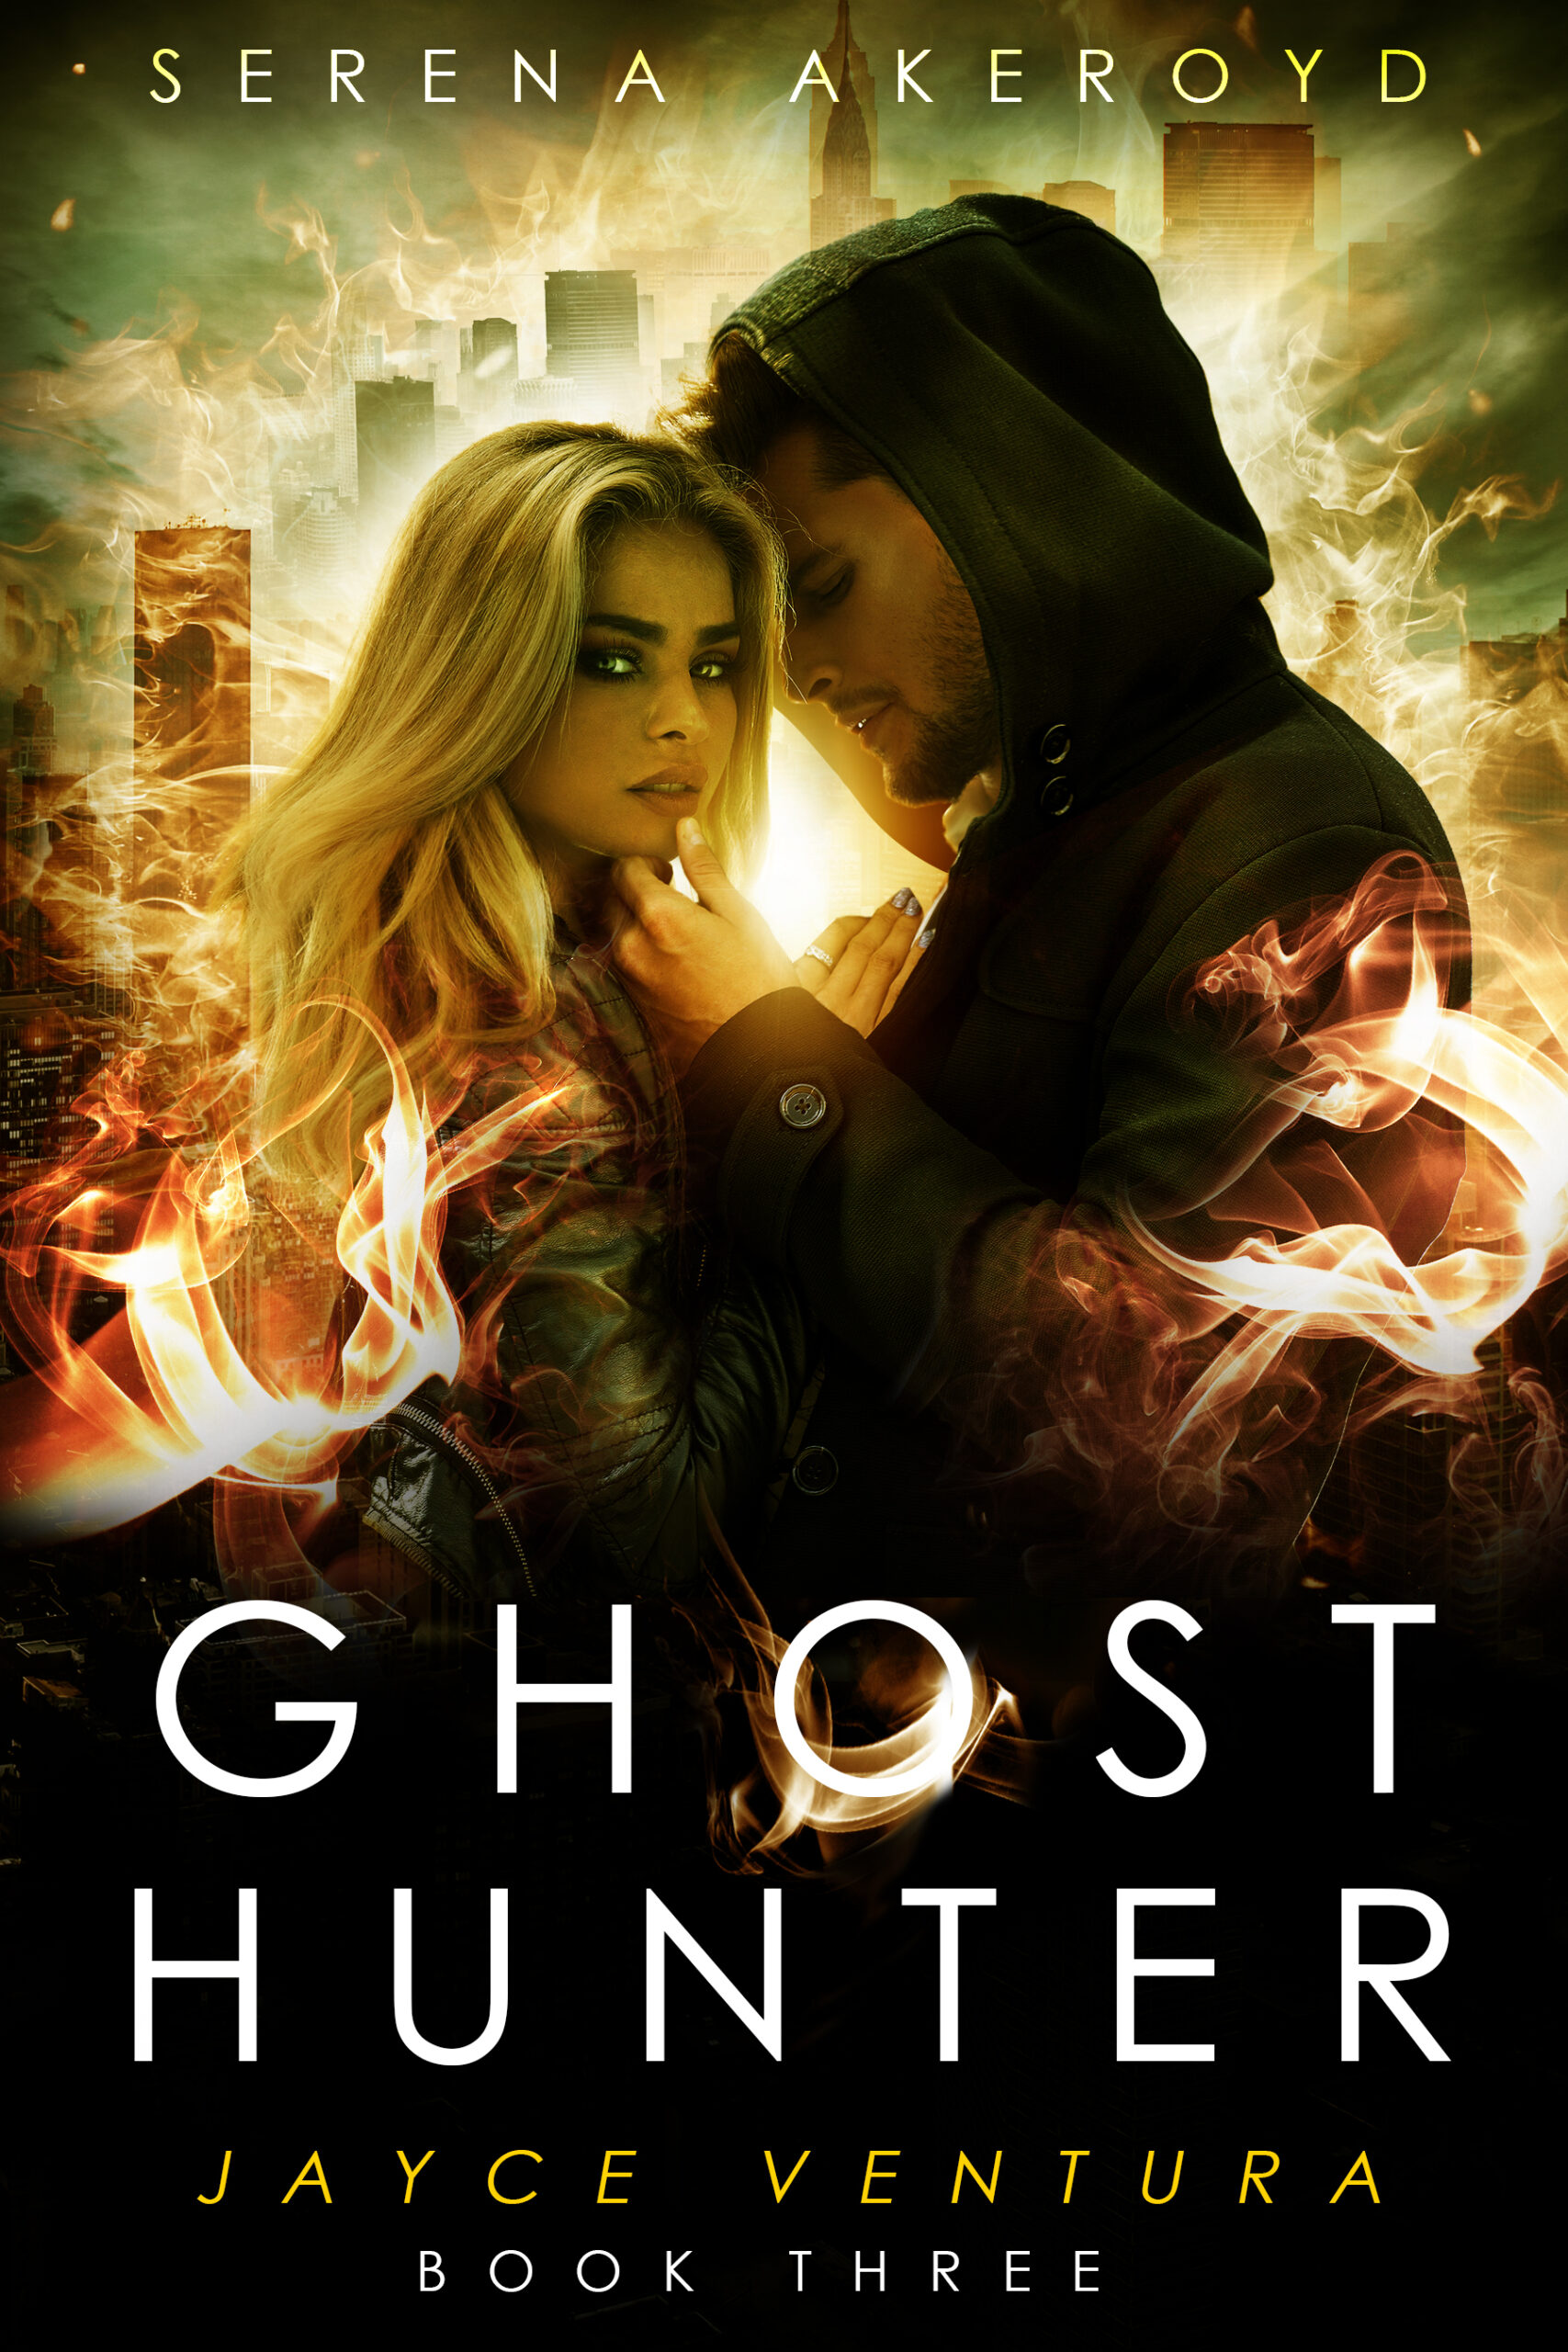 Ghost Hunter cover link to purchase